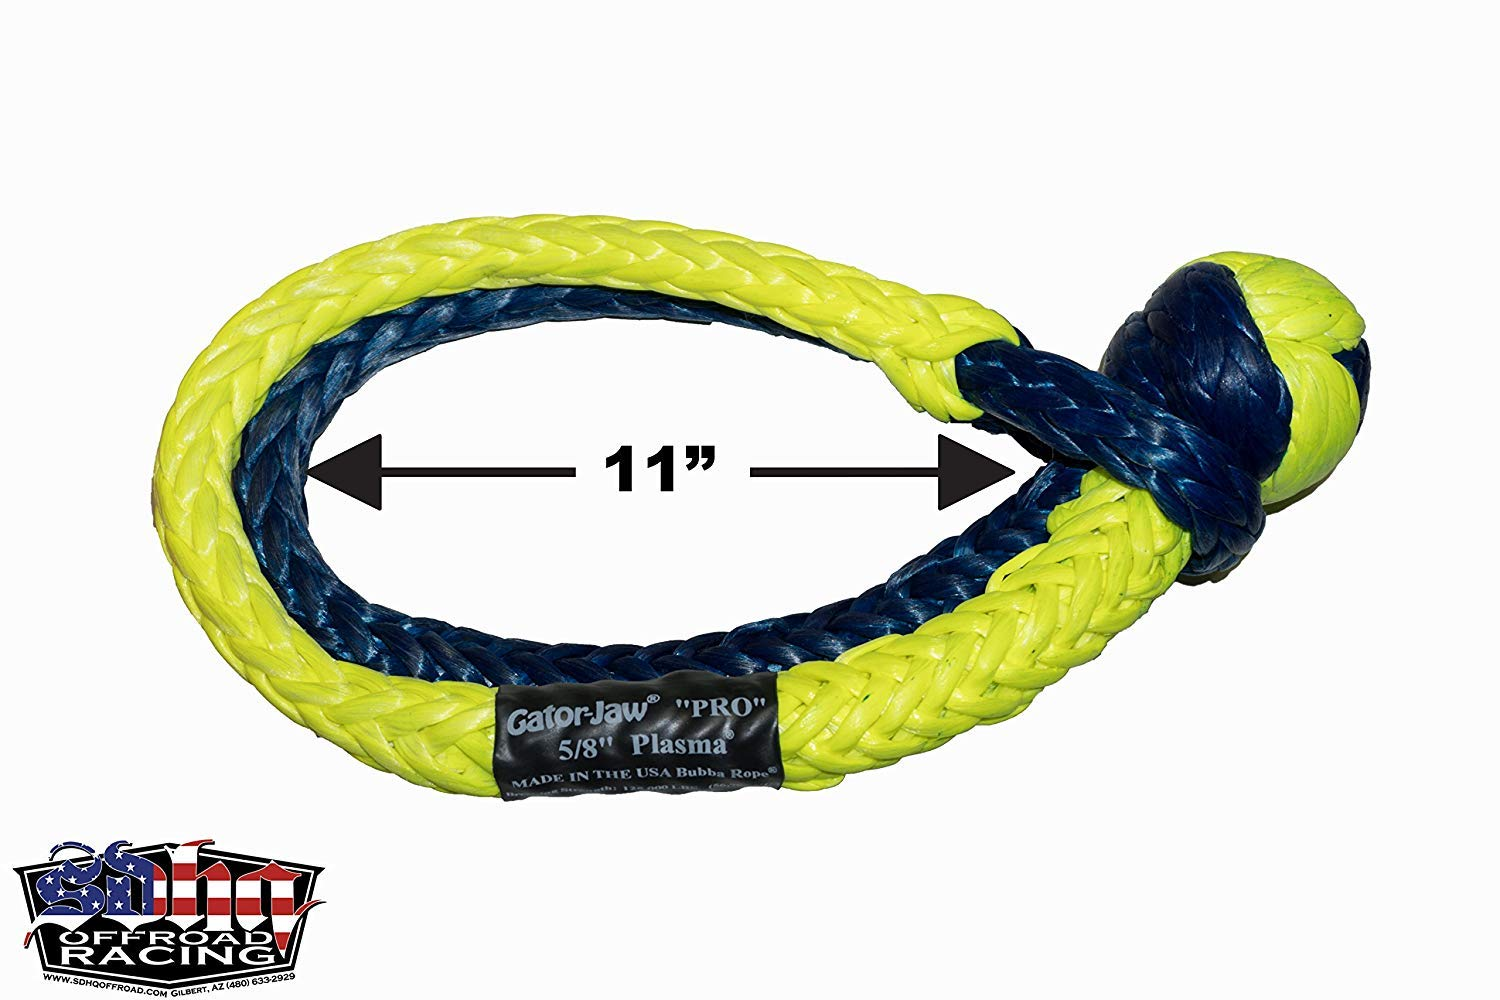 Bubba Rope Gator-Jaw Pro Synthetic Soft Shackle (125,000lb Breaking Strength Mega Yellow & Blue)